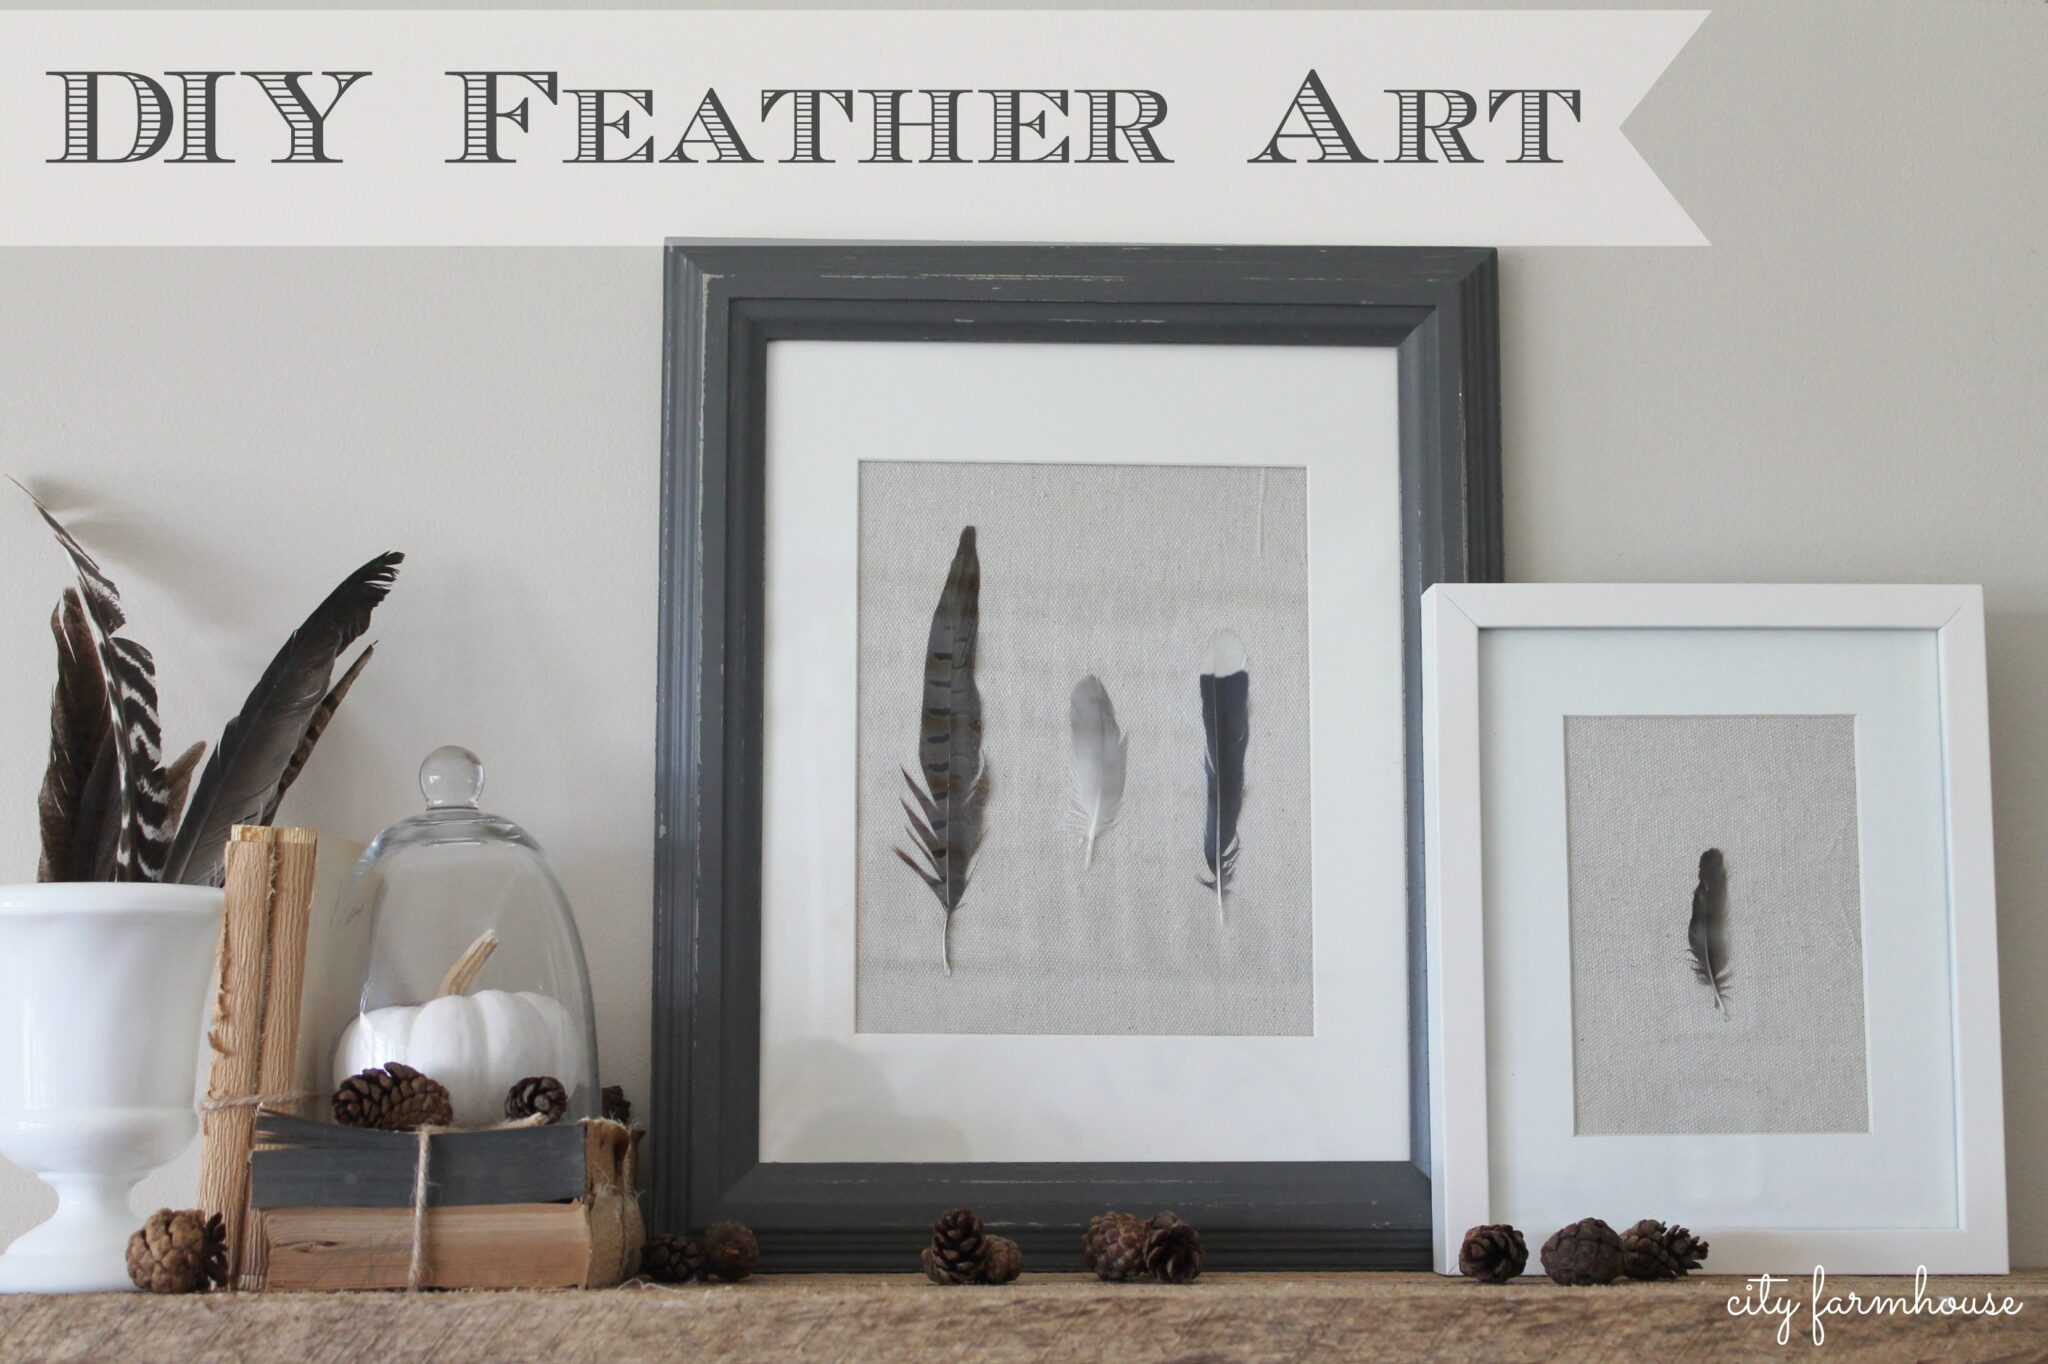 DIY Feather Art-Collect & Create With The Things You Love